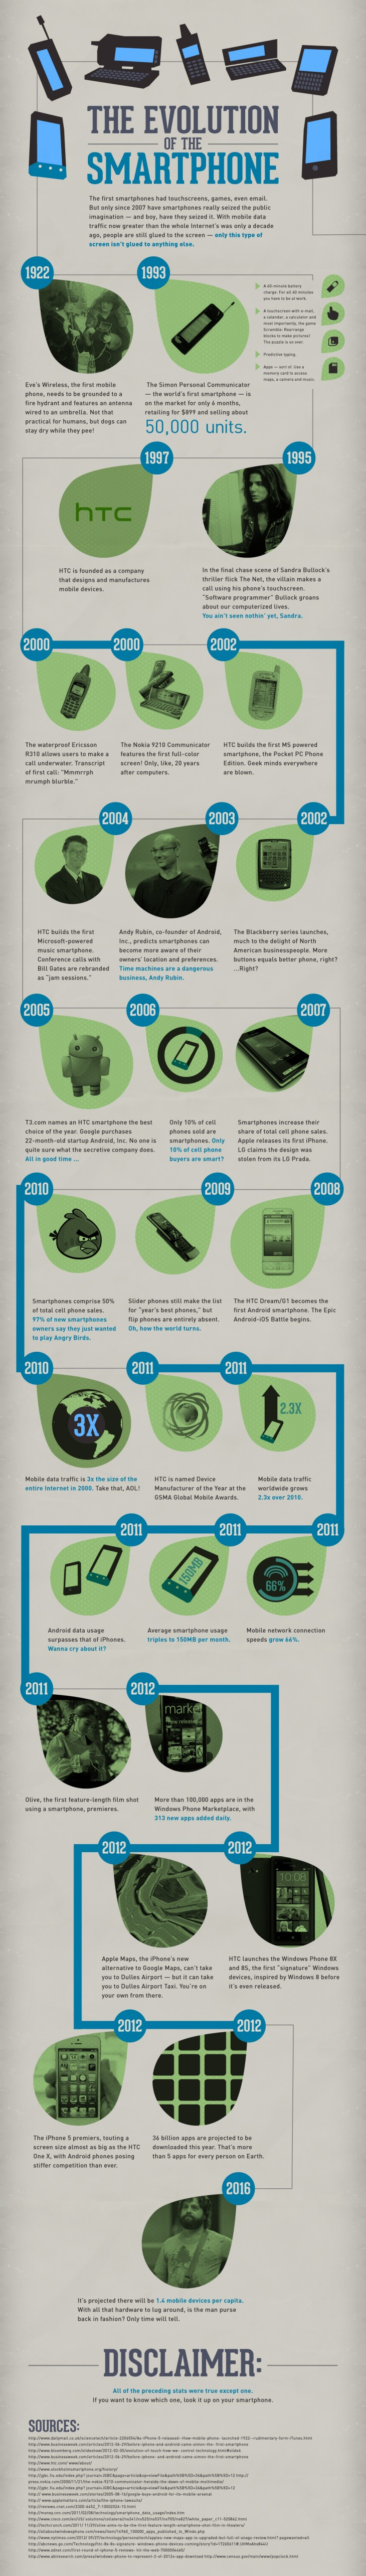 Smartphone Technology History-Infographic